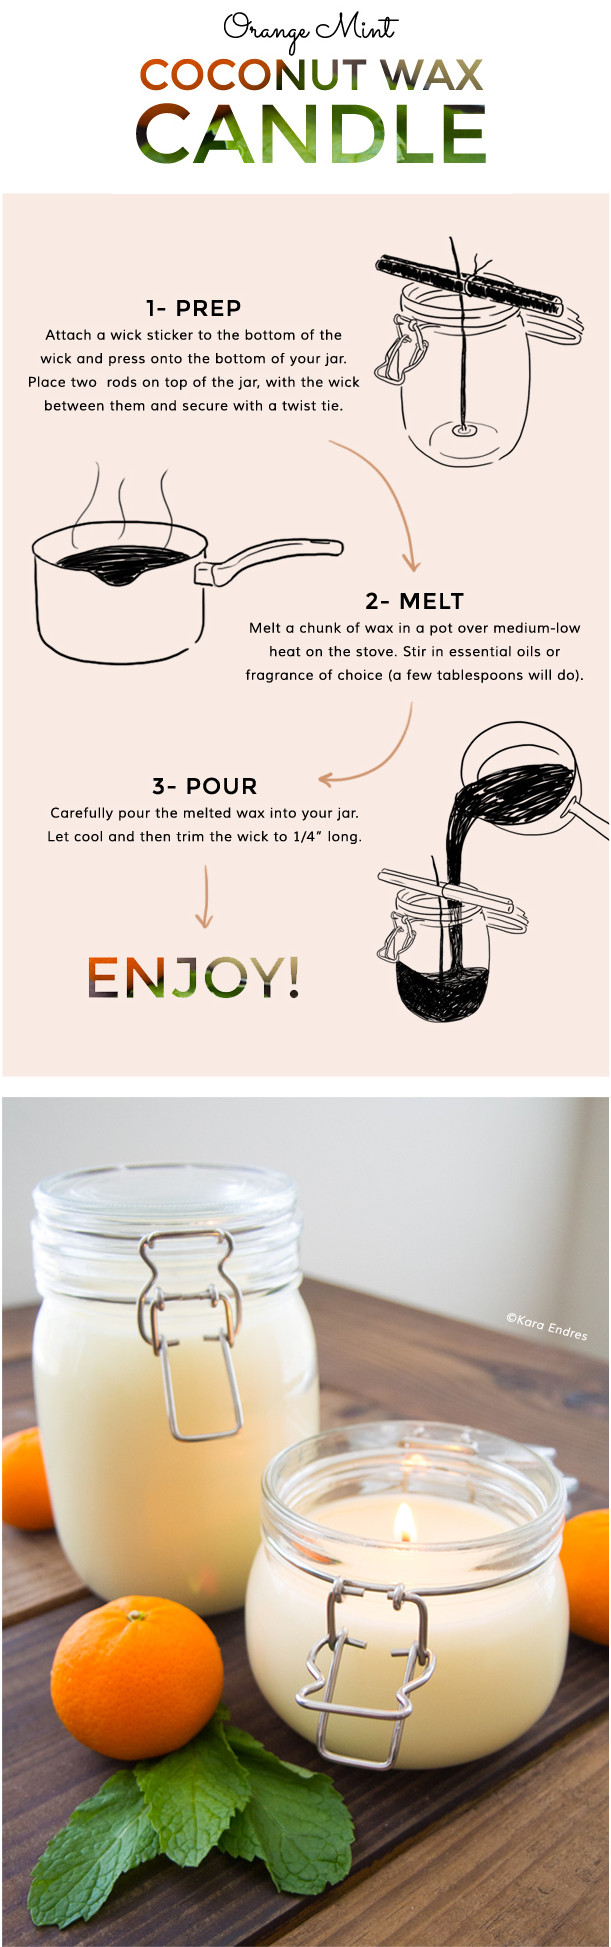 AD-Brilliant-DIY-Candle-Making-and-Decorating-Tutorials-06